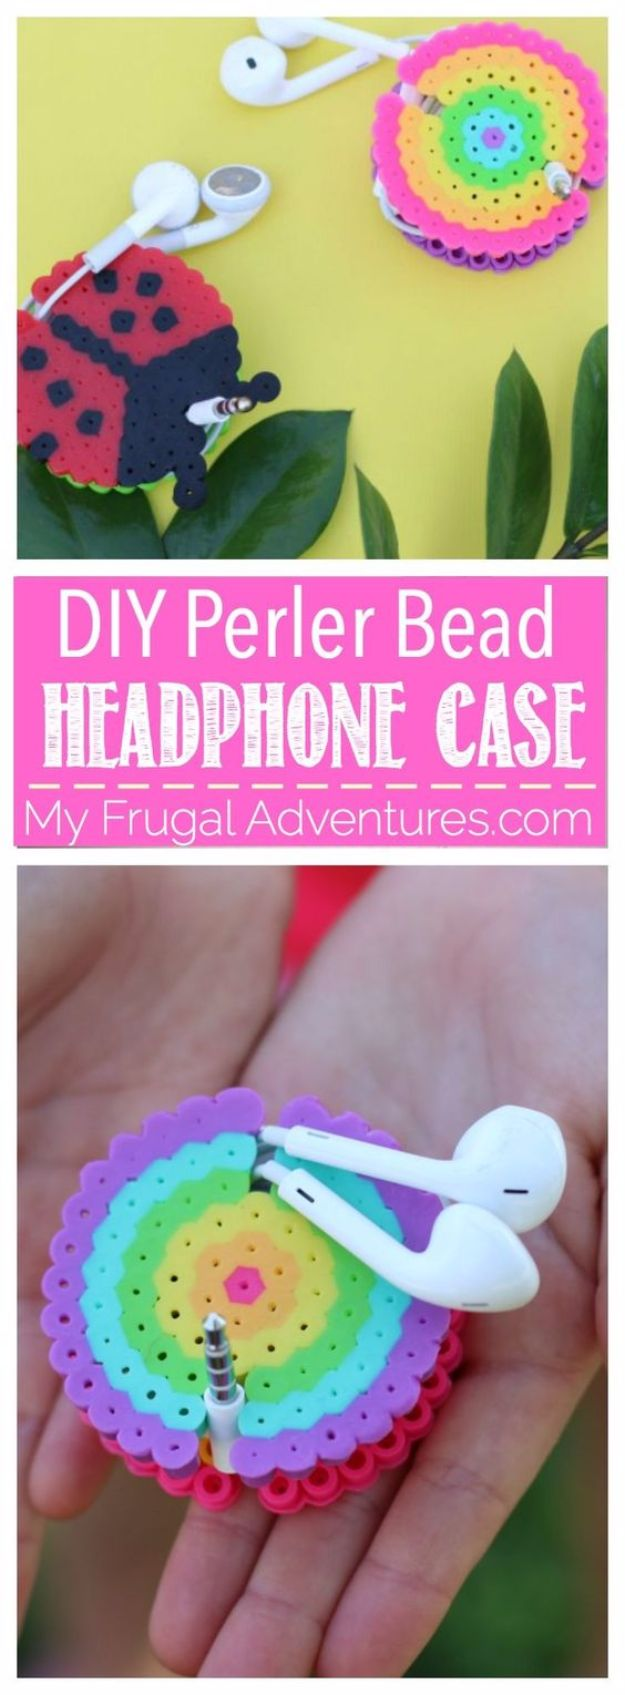 Best DIY Ideas for Teens To Make This Summer - DIY Perler Bead Headphone Case - Fun and Easy Crafts, Room Decor, Toys and Craft Projects to Make And Sell - Cool Gifts for Friends, Awesome Things To Do When You Are Bored - Teenagers - Boys and Girls Love Making These Creative Projects With Step by Step Tutorials and Instructions #diyideas #summer #teencrafts #crafts